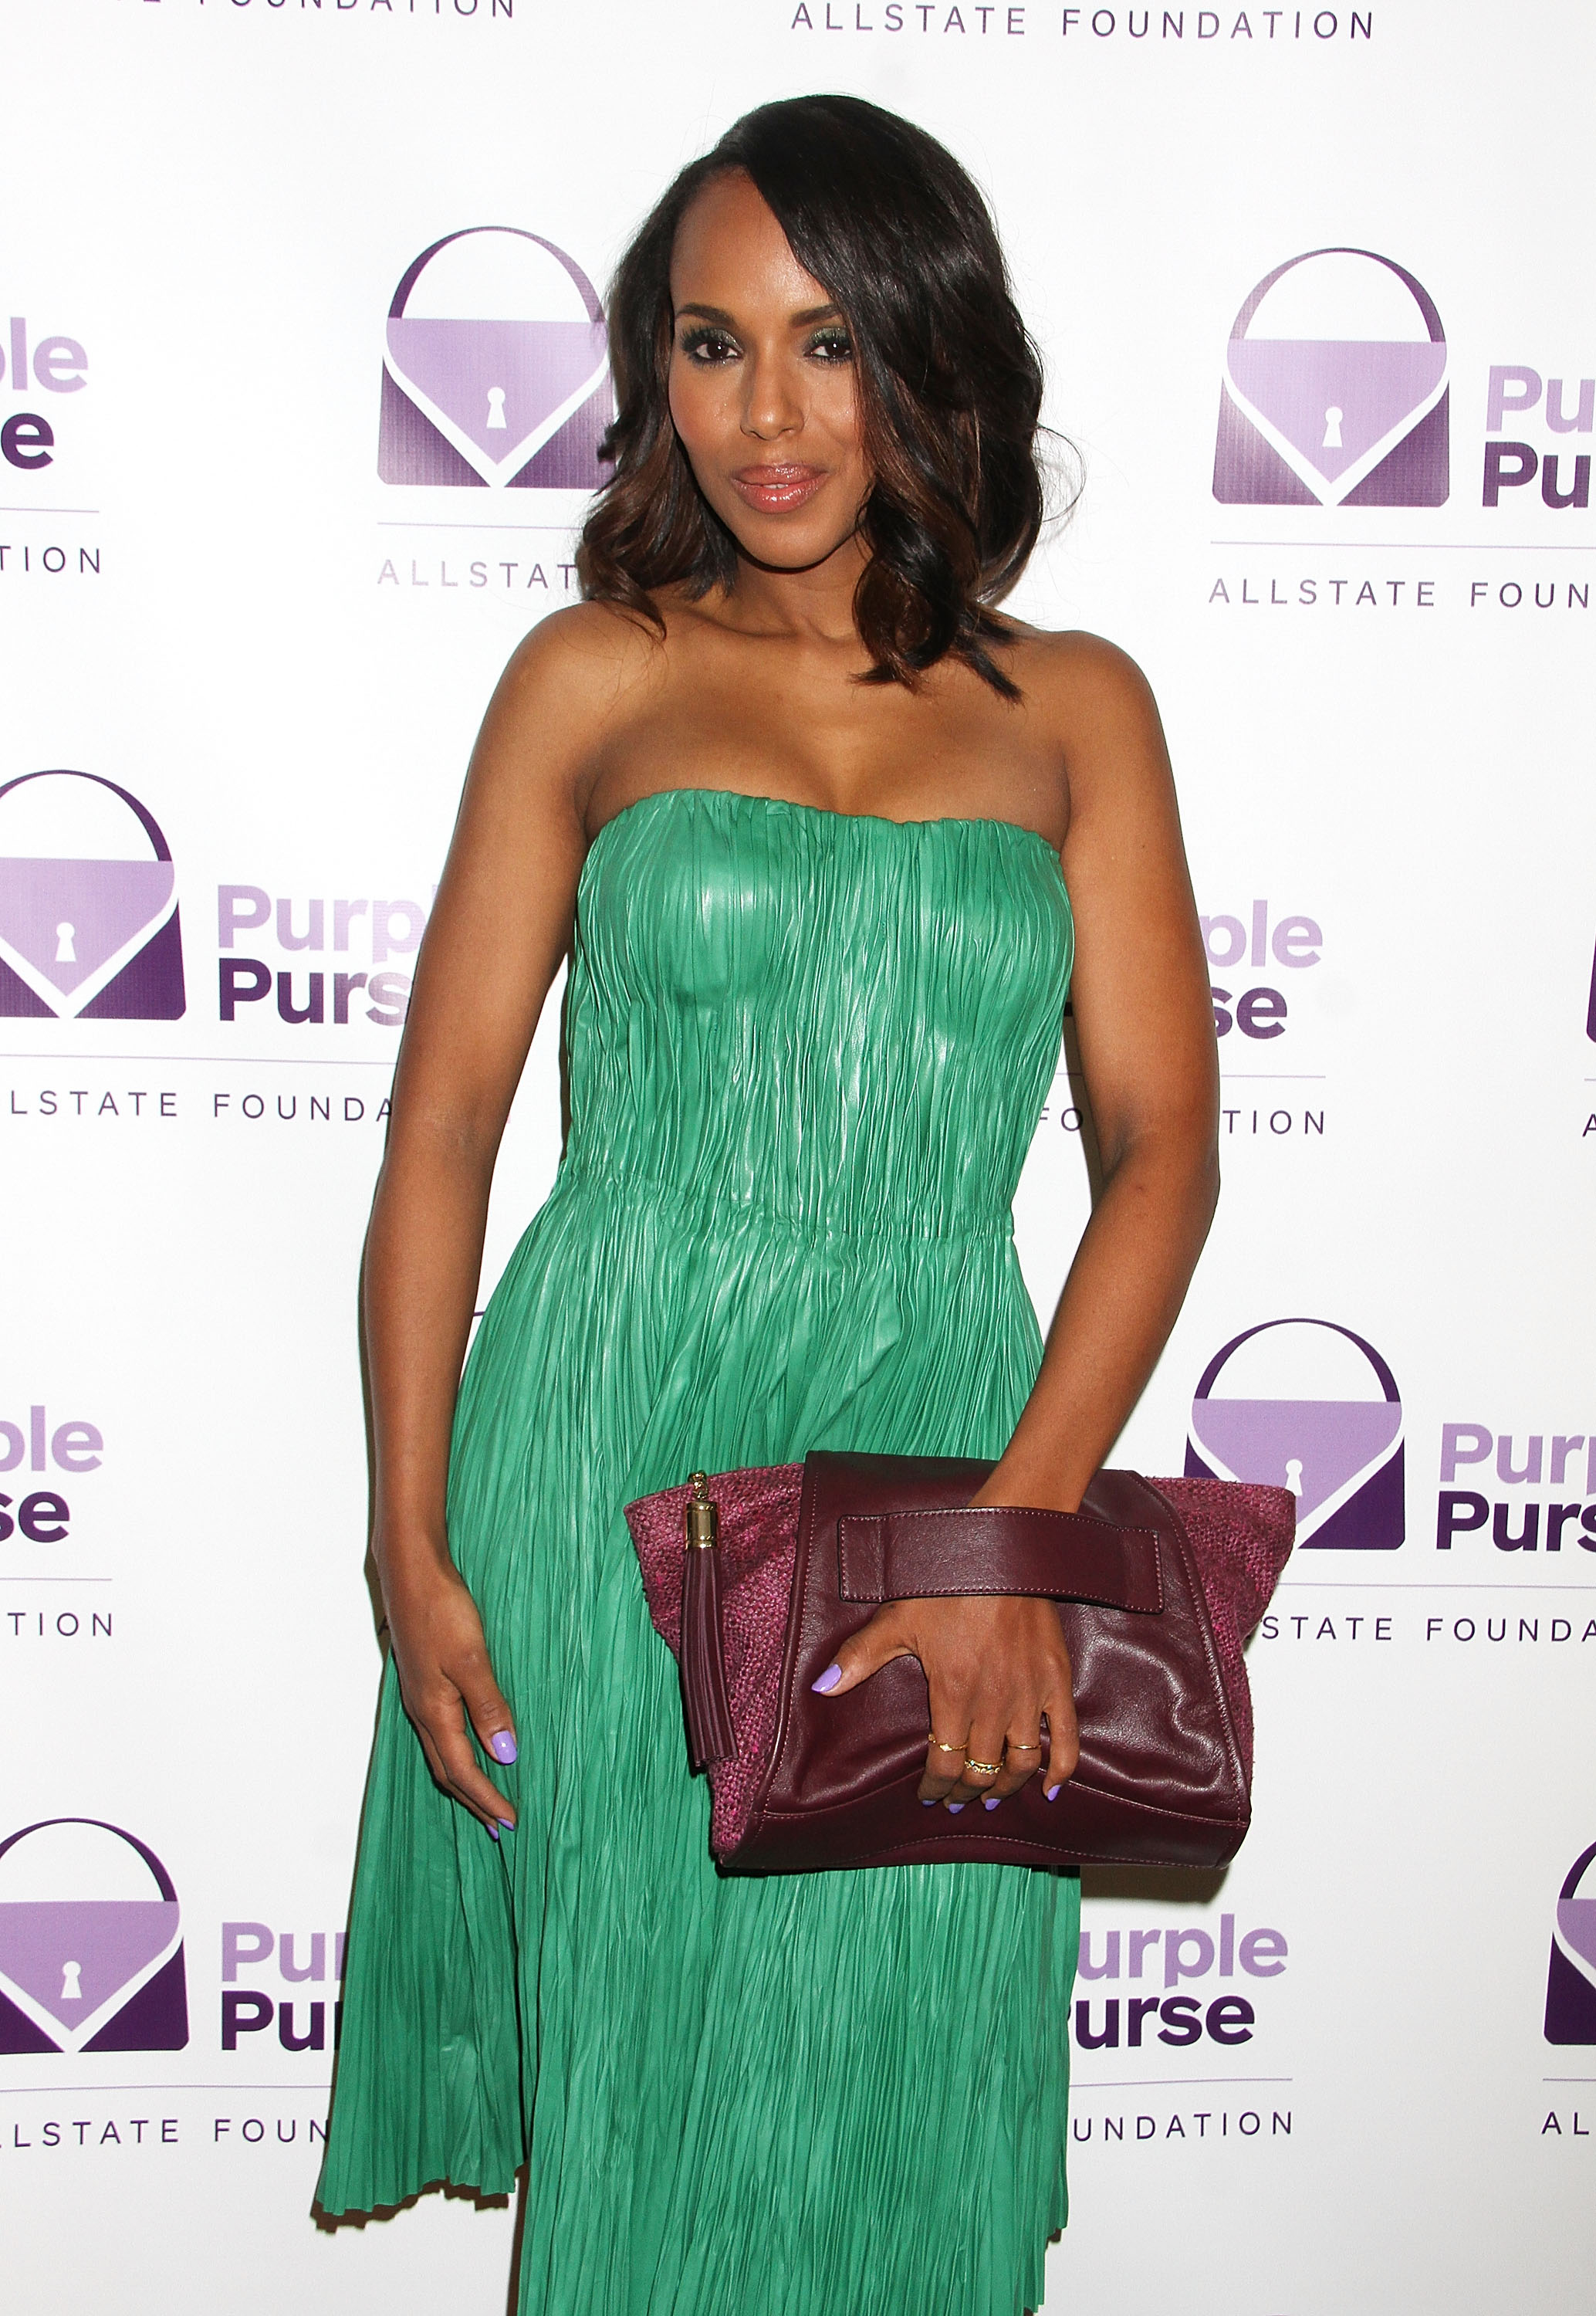 Kerry Washington attends the 2014 Allstate Foundation Purple Purse Program Hosted By Kerry Washington at The Glasshouses on September 15, 2014 in New York City.